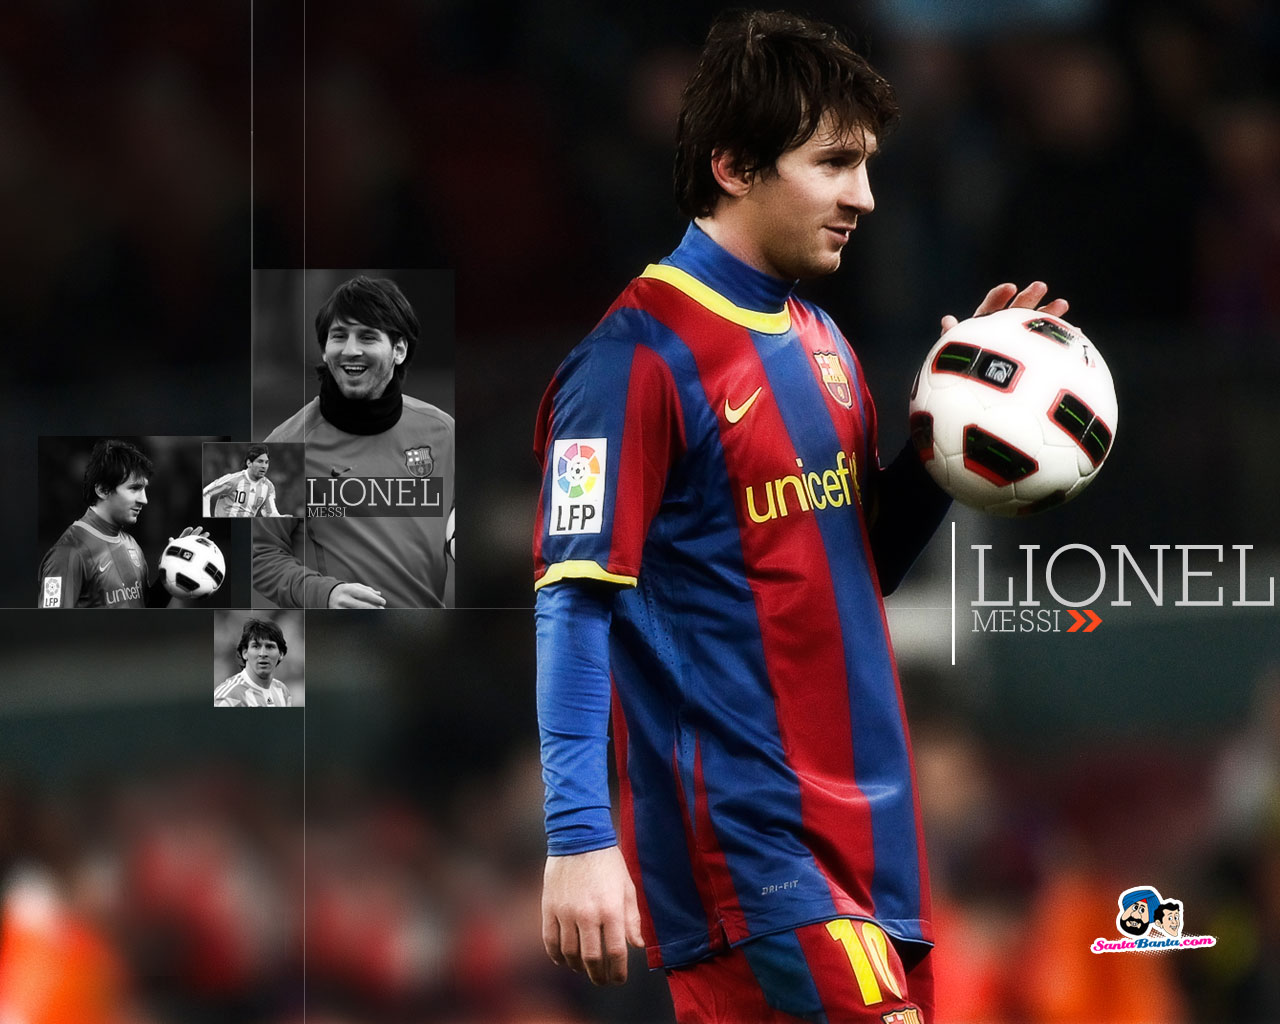 Free Subscribe Lionel Messi Wallpaper